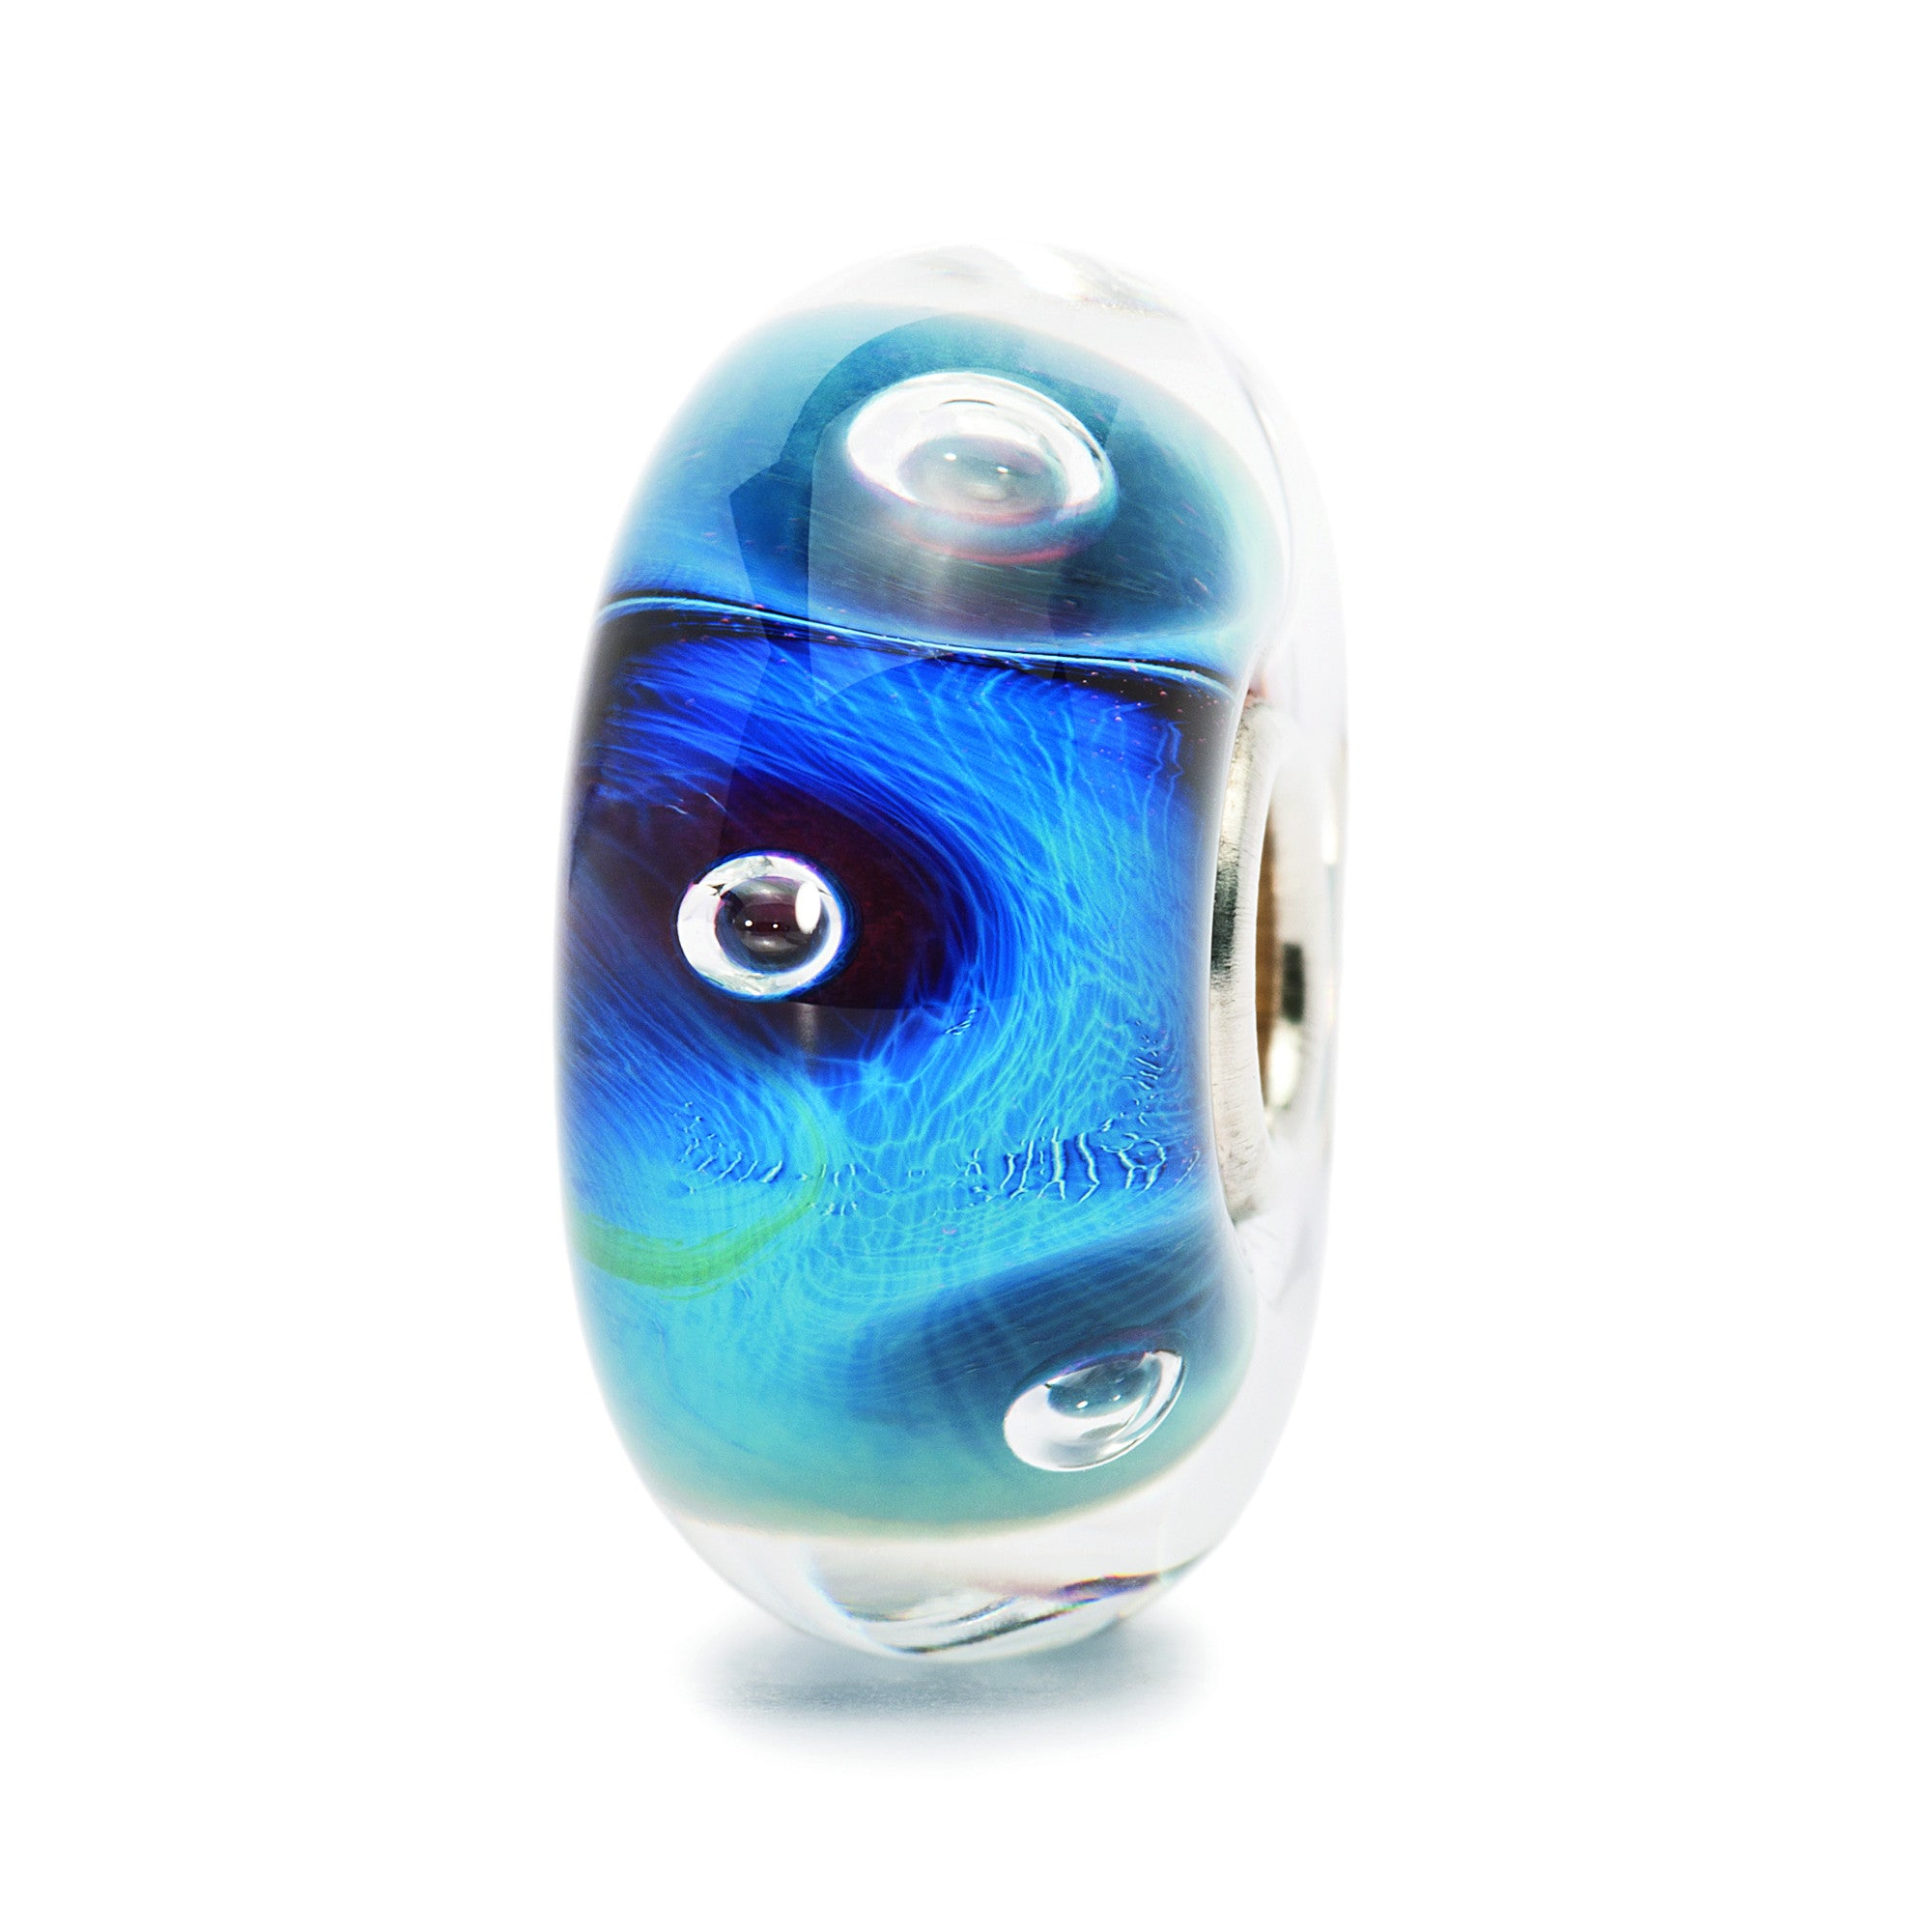 Trollbeads Bead The Eye